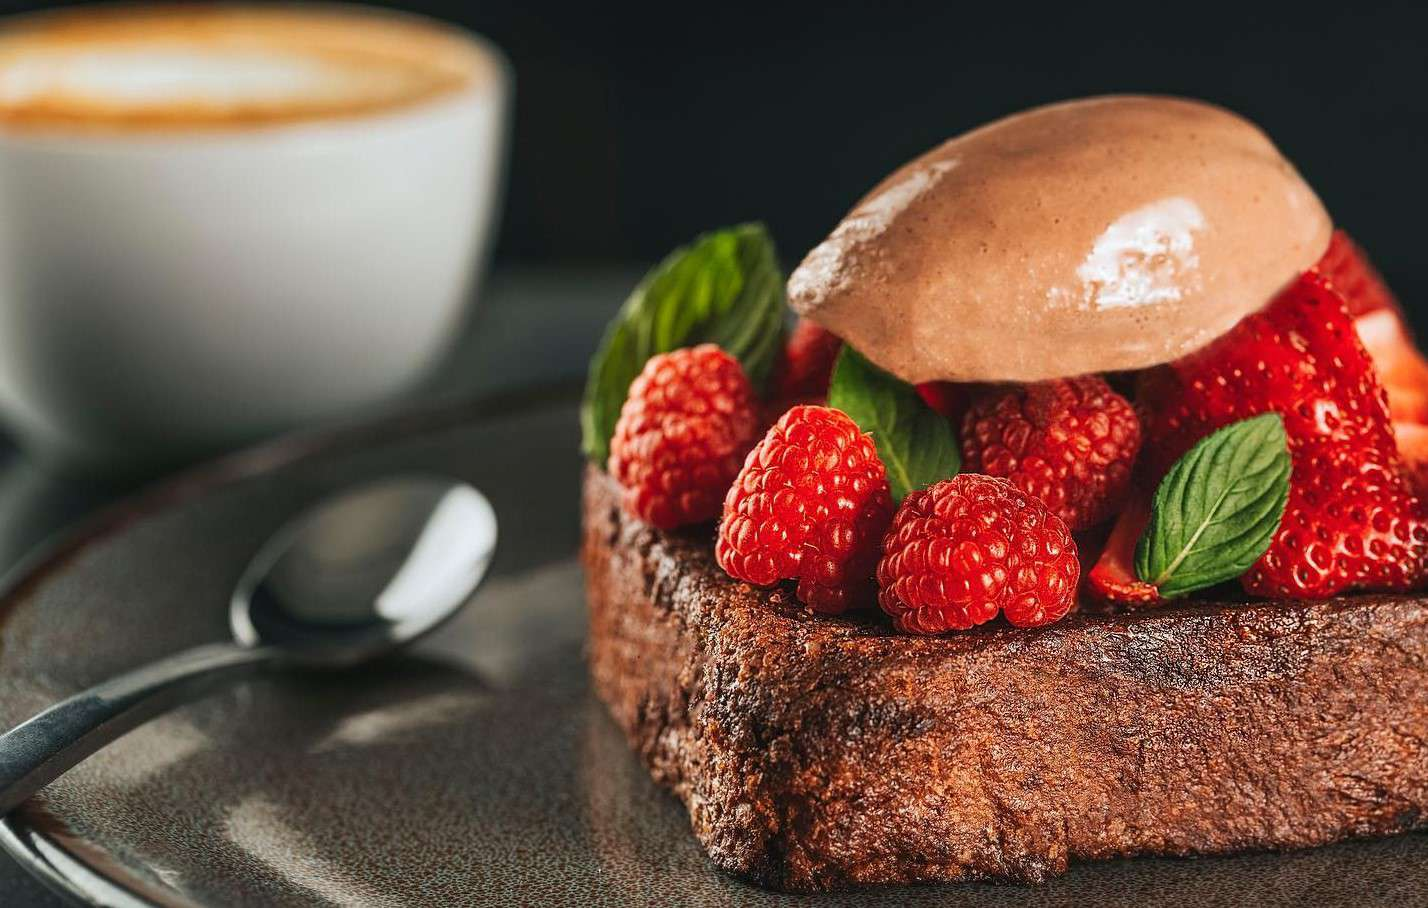 Chocolate French Toast with berries and chocolate ice cream at Boulangerie Central Guadalajara